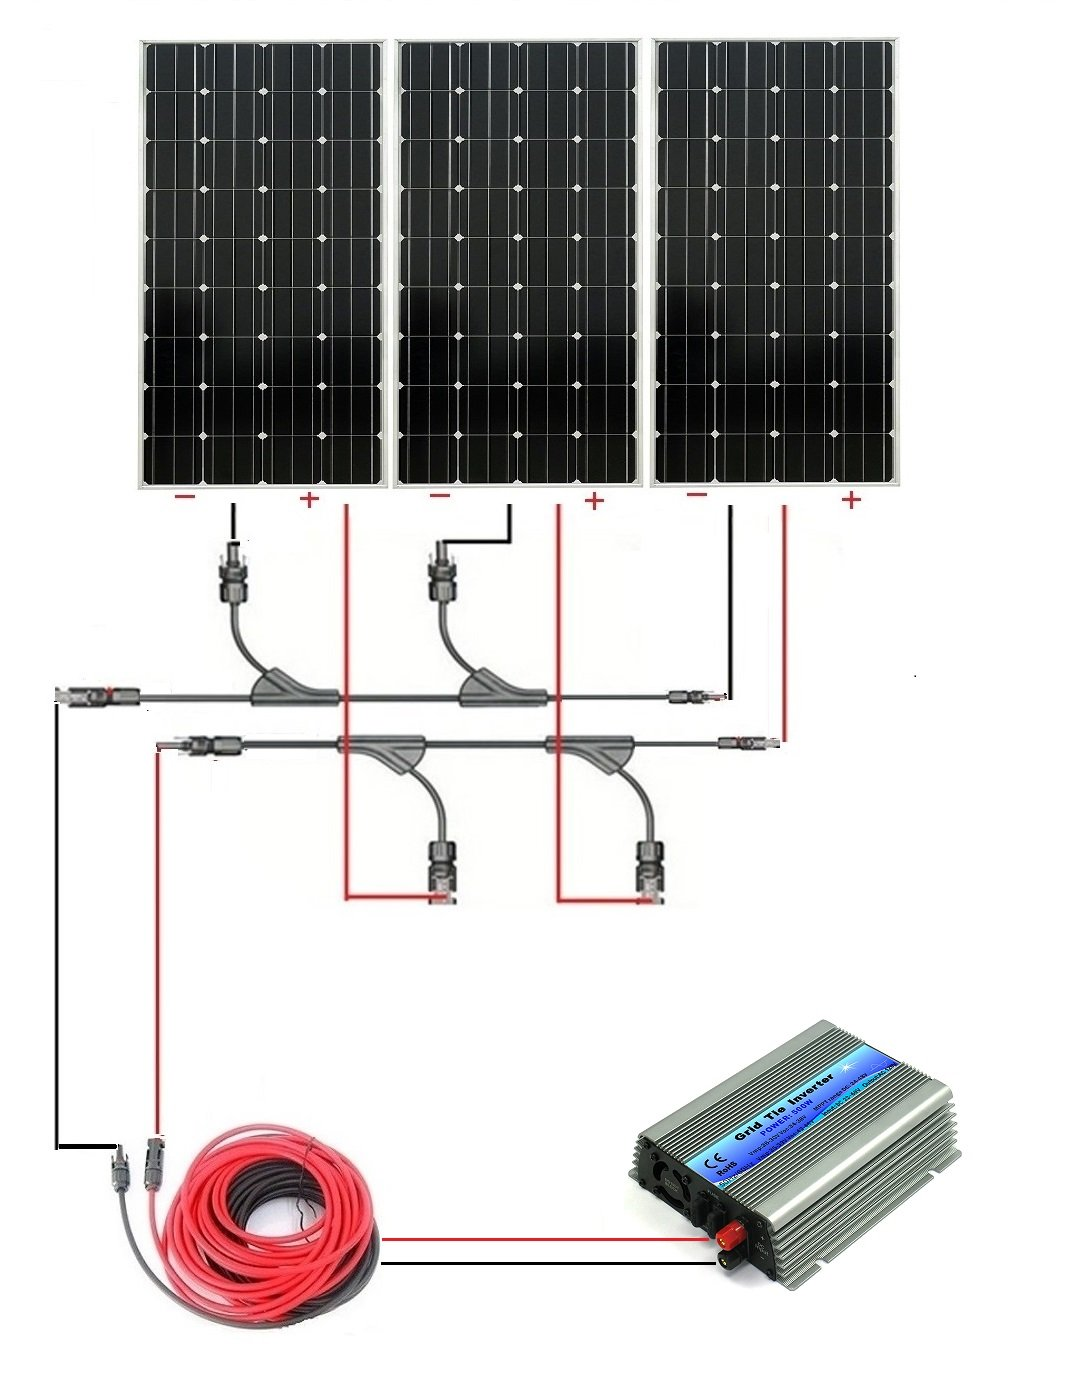 500w Solar Inverter Grid Tie Wiring Diagram Schematic Diagrams Eco Worthy 12v Off Complete Panel Kit 3pcs 160w Outback